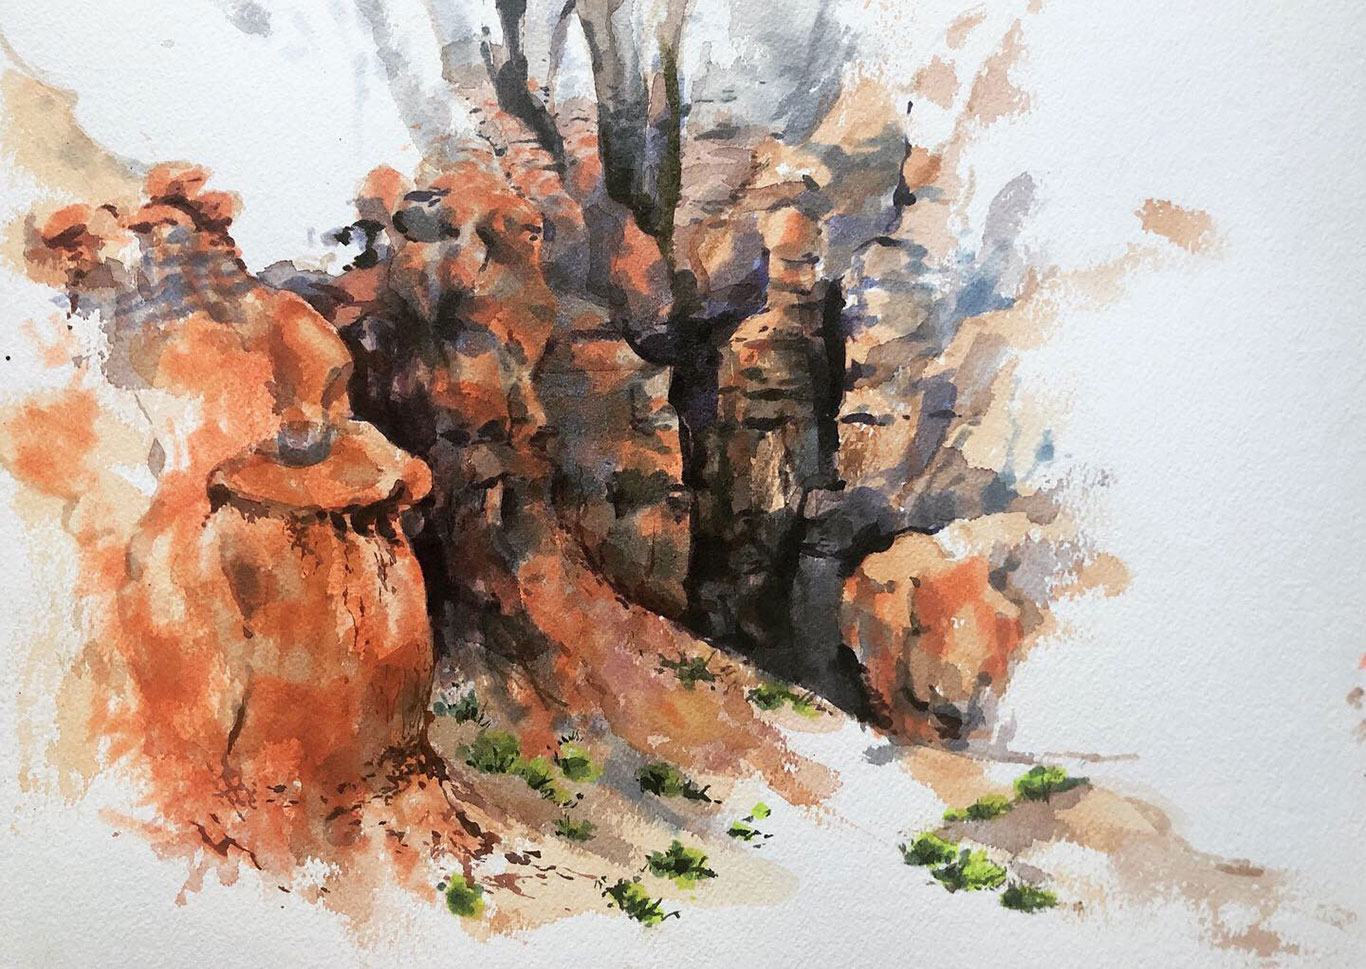 Goblin Valley Landscape Watercolor Painting, Clara Lieu